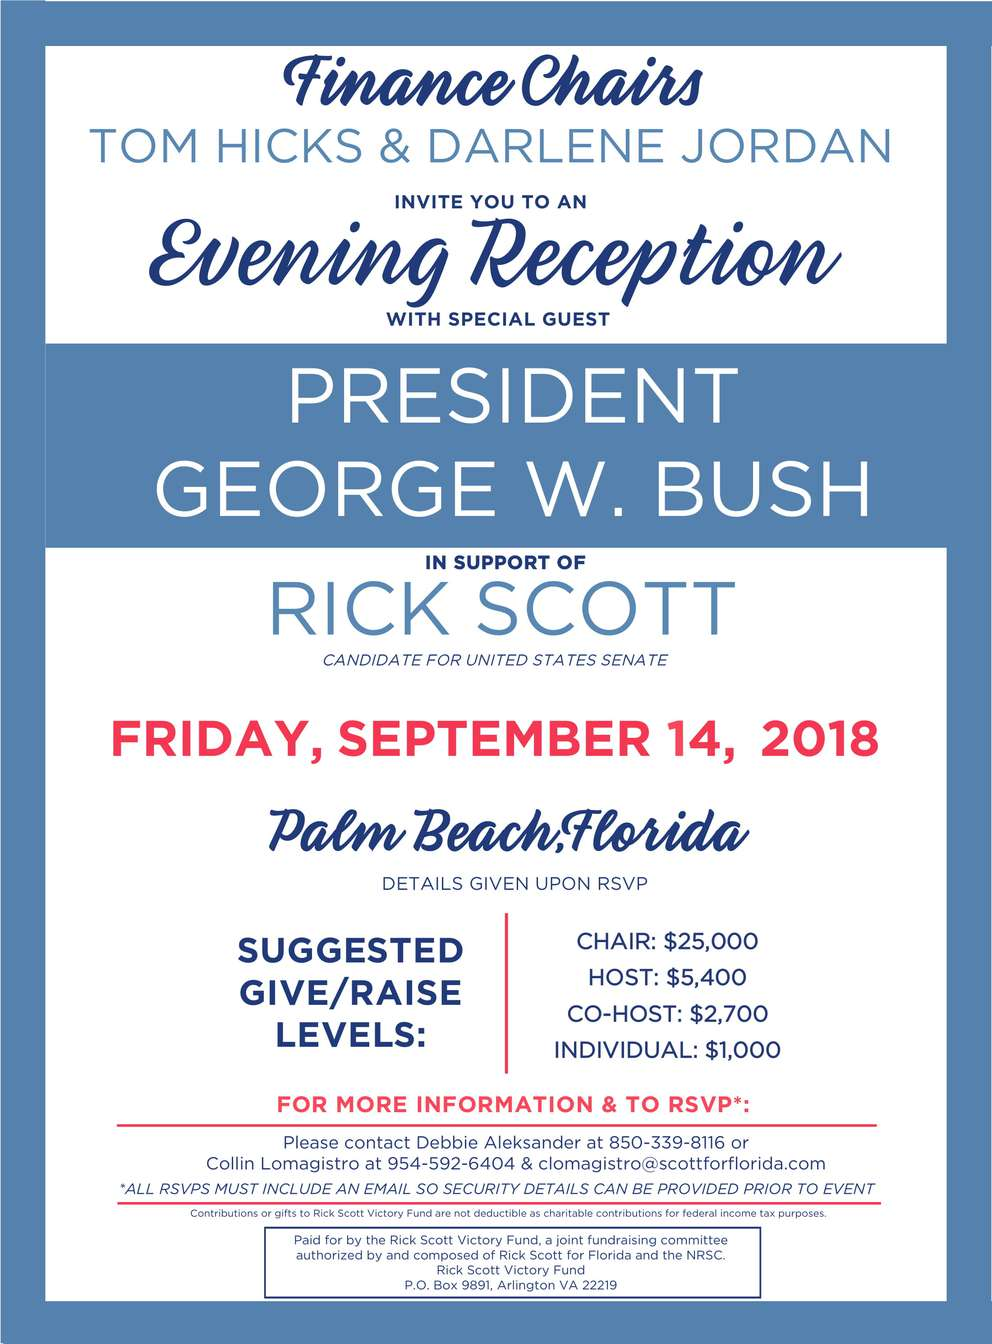 Invitation to attend fundraiser for Gov. Rick Scott featuring former President George W. Bush.